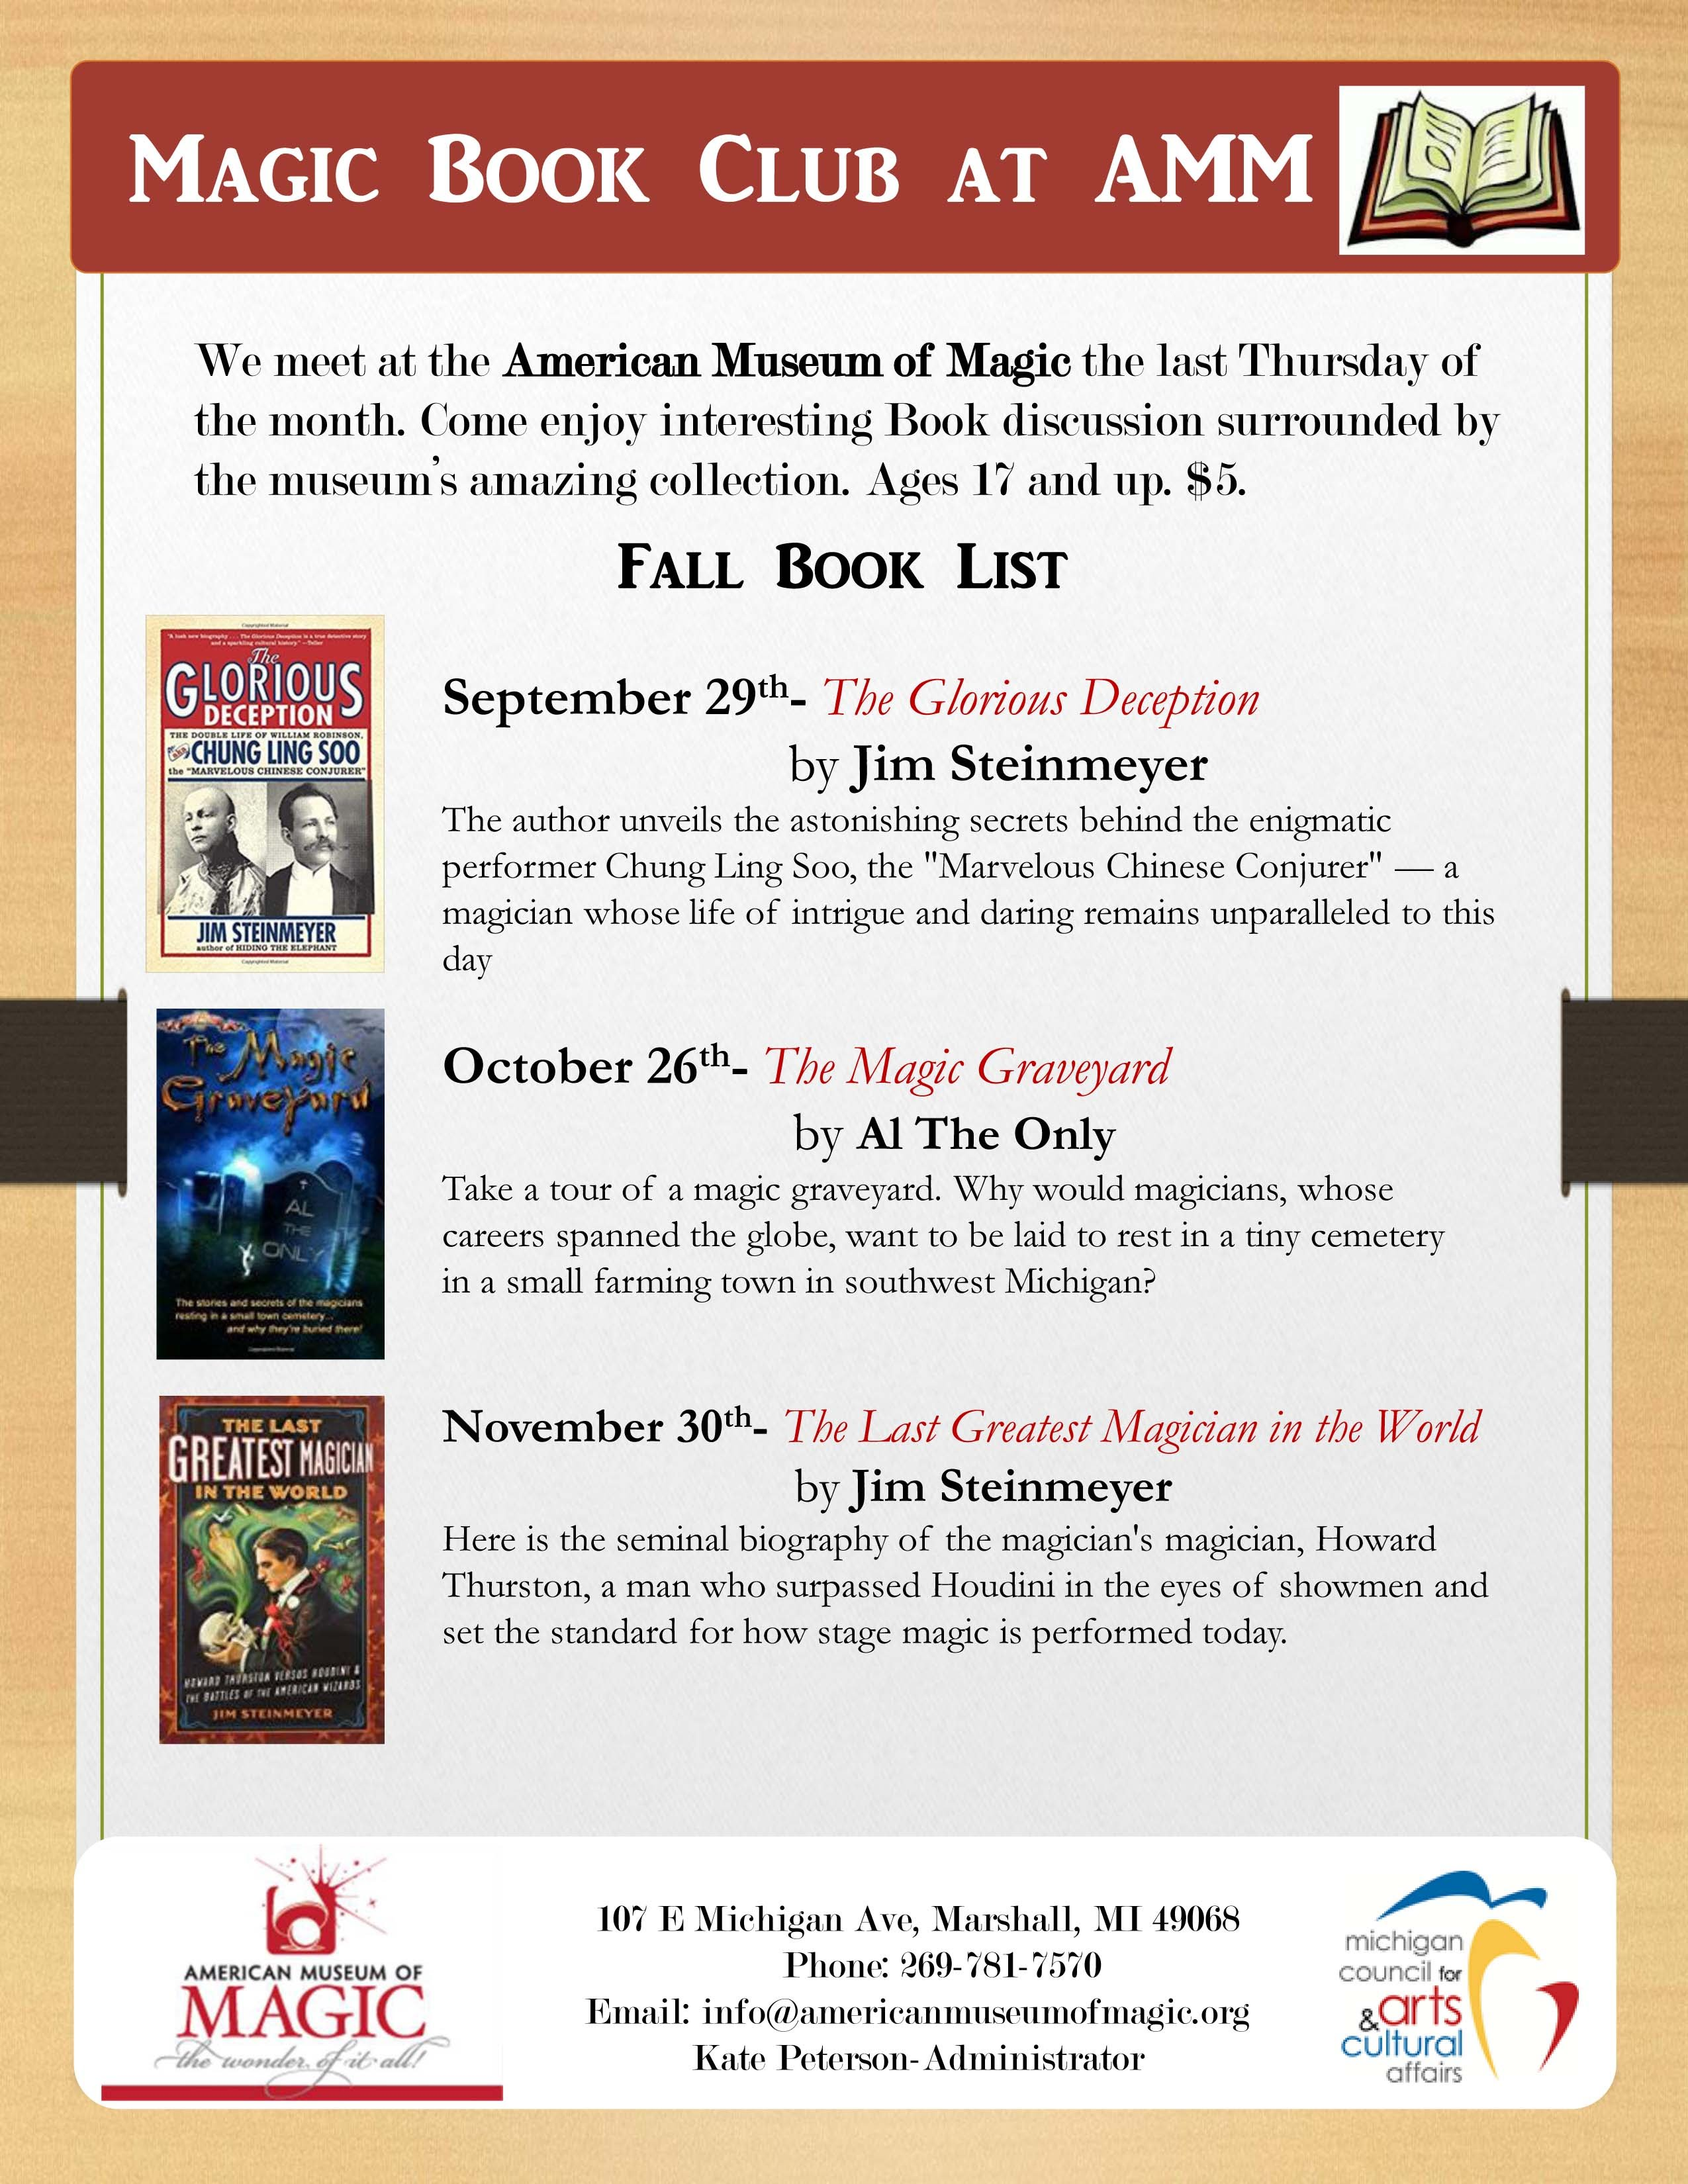 Books to read for the Magic Book Club